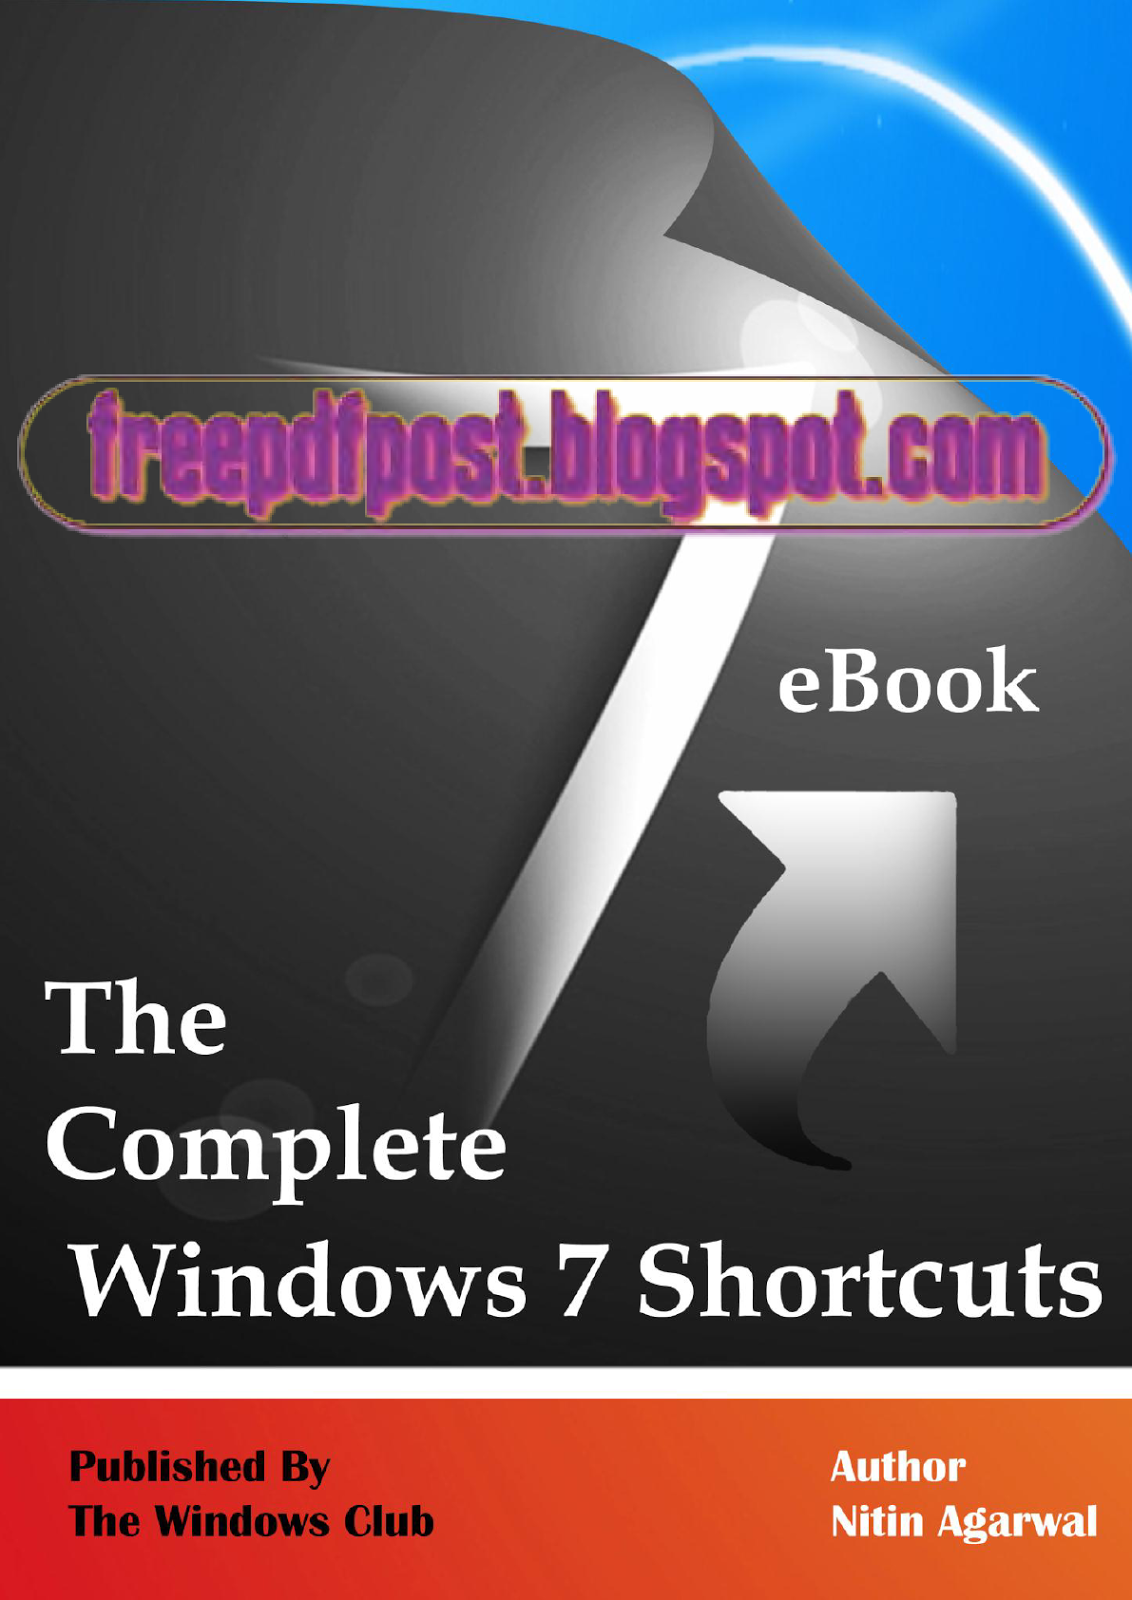 https://ia601407.us.archive.org/24/items/TheCompleteWindows7Shortcuts/The%20Complete%20Windows%207%20Shortcuts.pdf